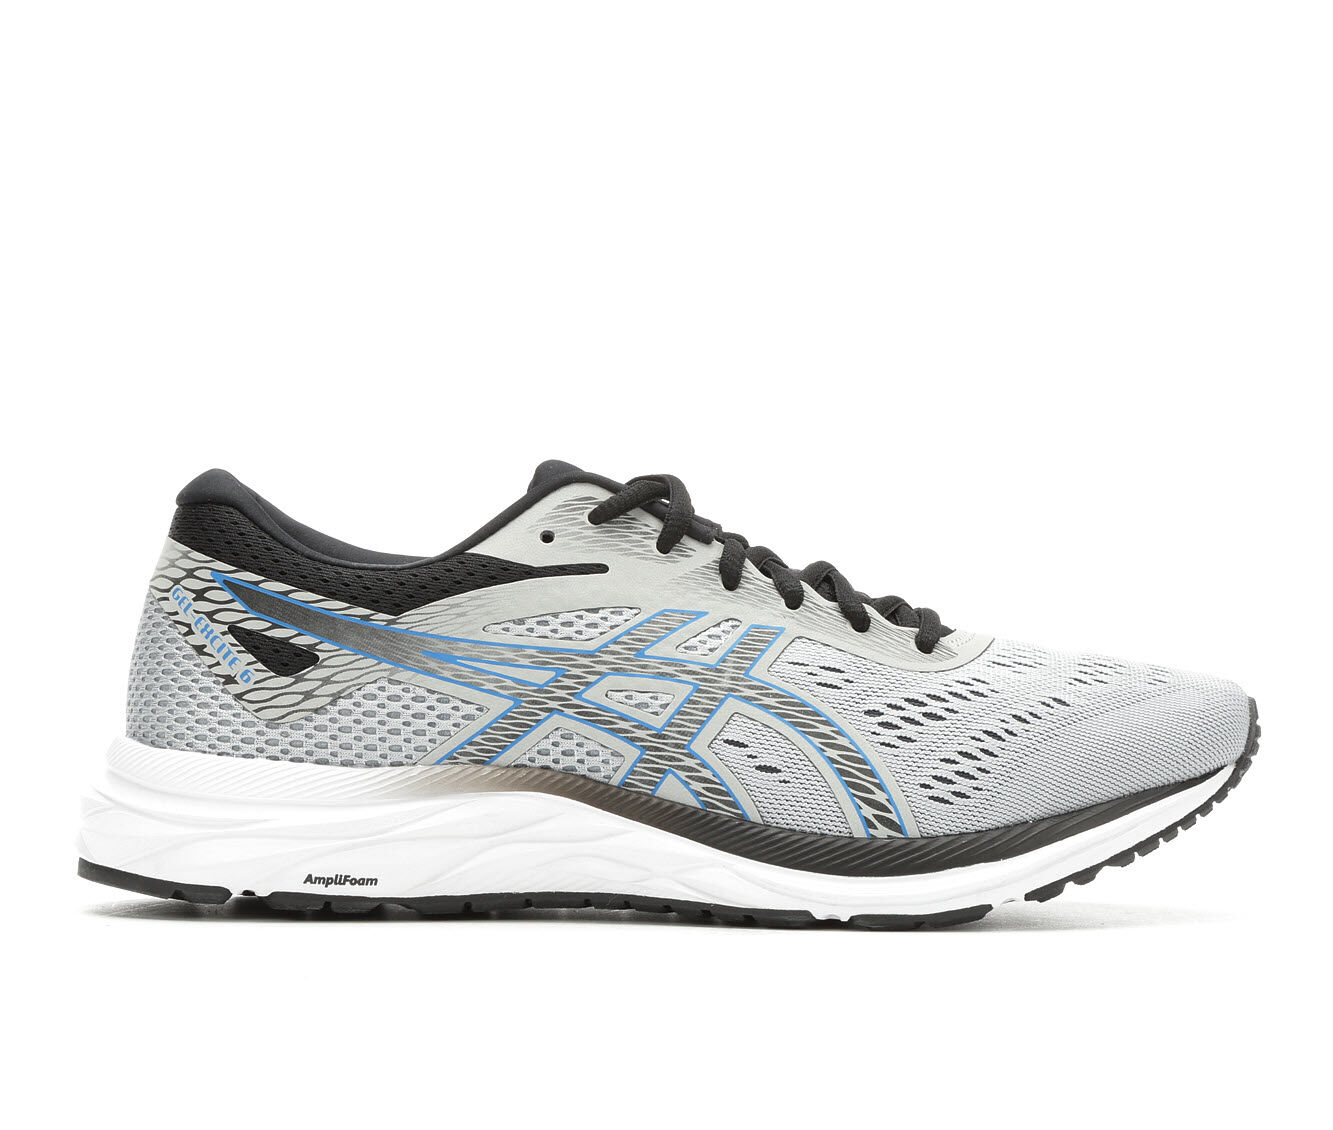 purchase authentic Men's ASICS Gel Excite 6 Running Shoes Gy/Bl/Bk/Wh